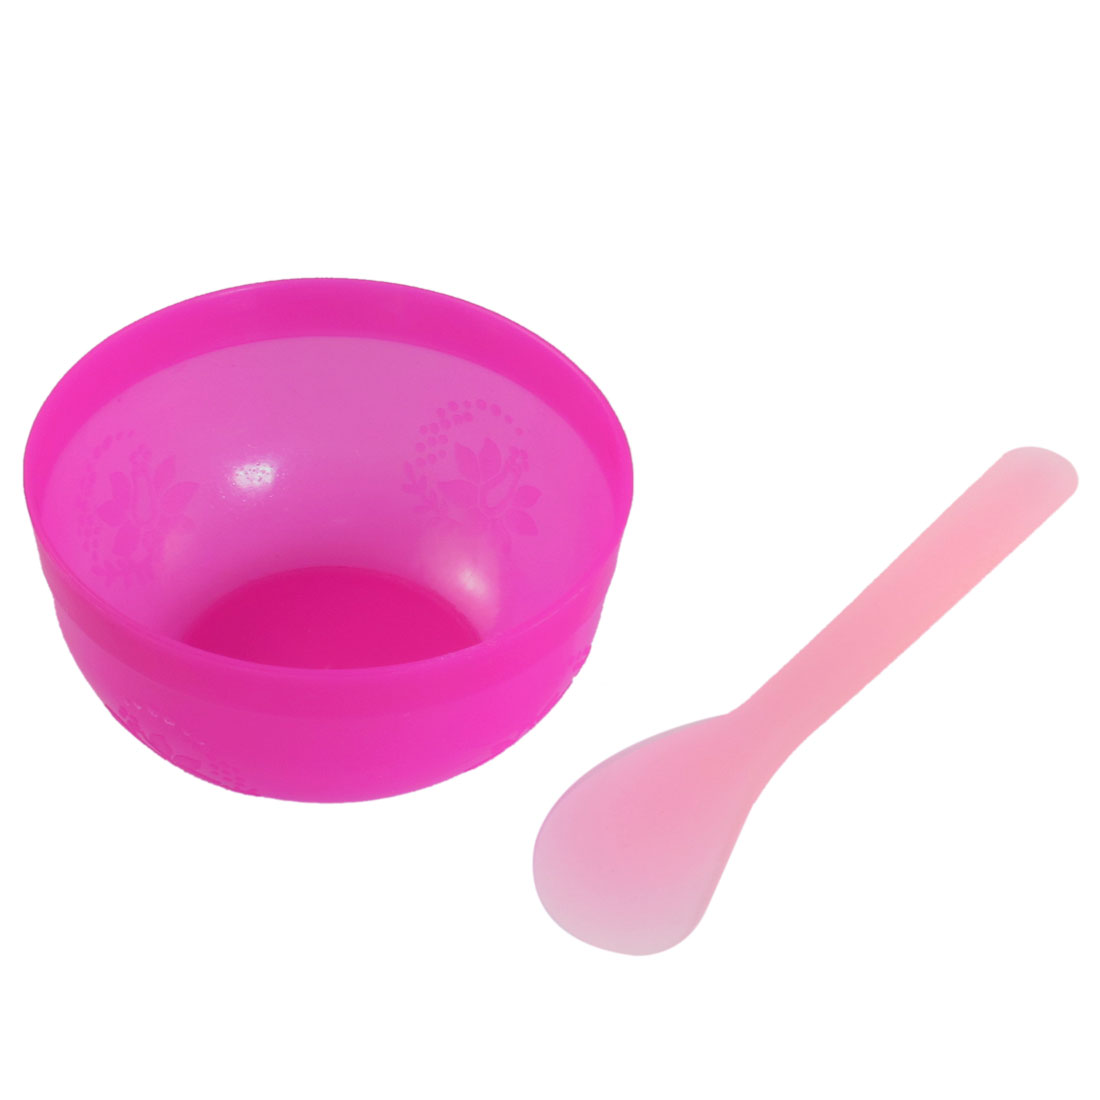 Lady Fuchsia Floral Pattern Plastic Mask Bowl + Pink Stick Cosmetic Tool